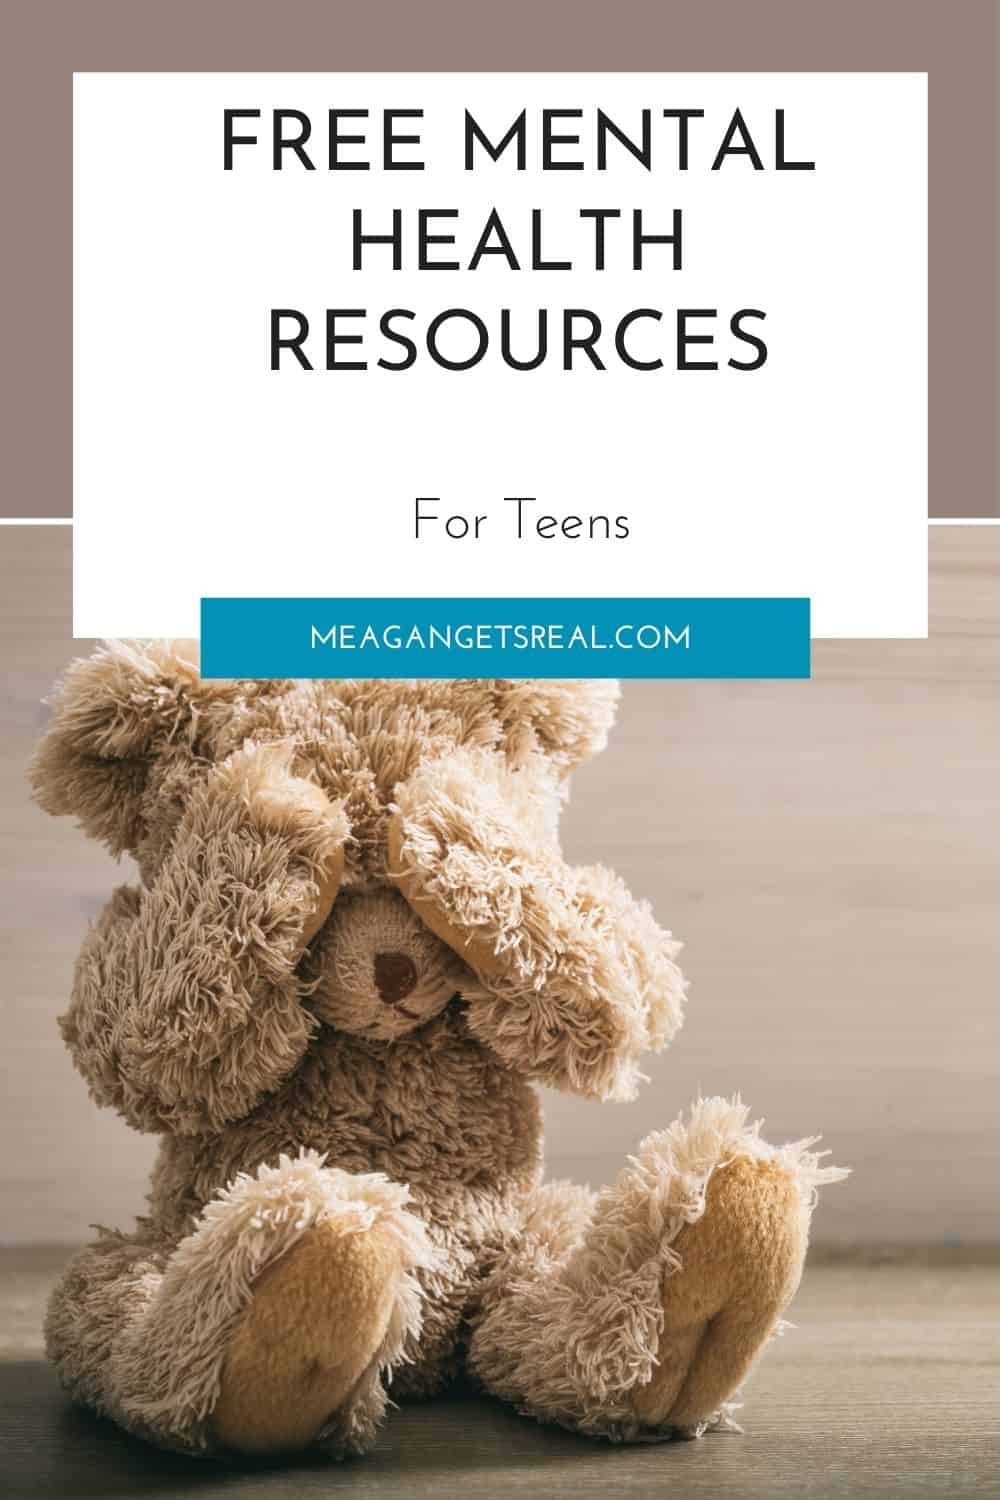 Free mental health resources for teens to get through crisis situations such as suicide, sexual assault, trafficking, abuse, and more! (Crisis Phone Numbers Included)